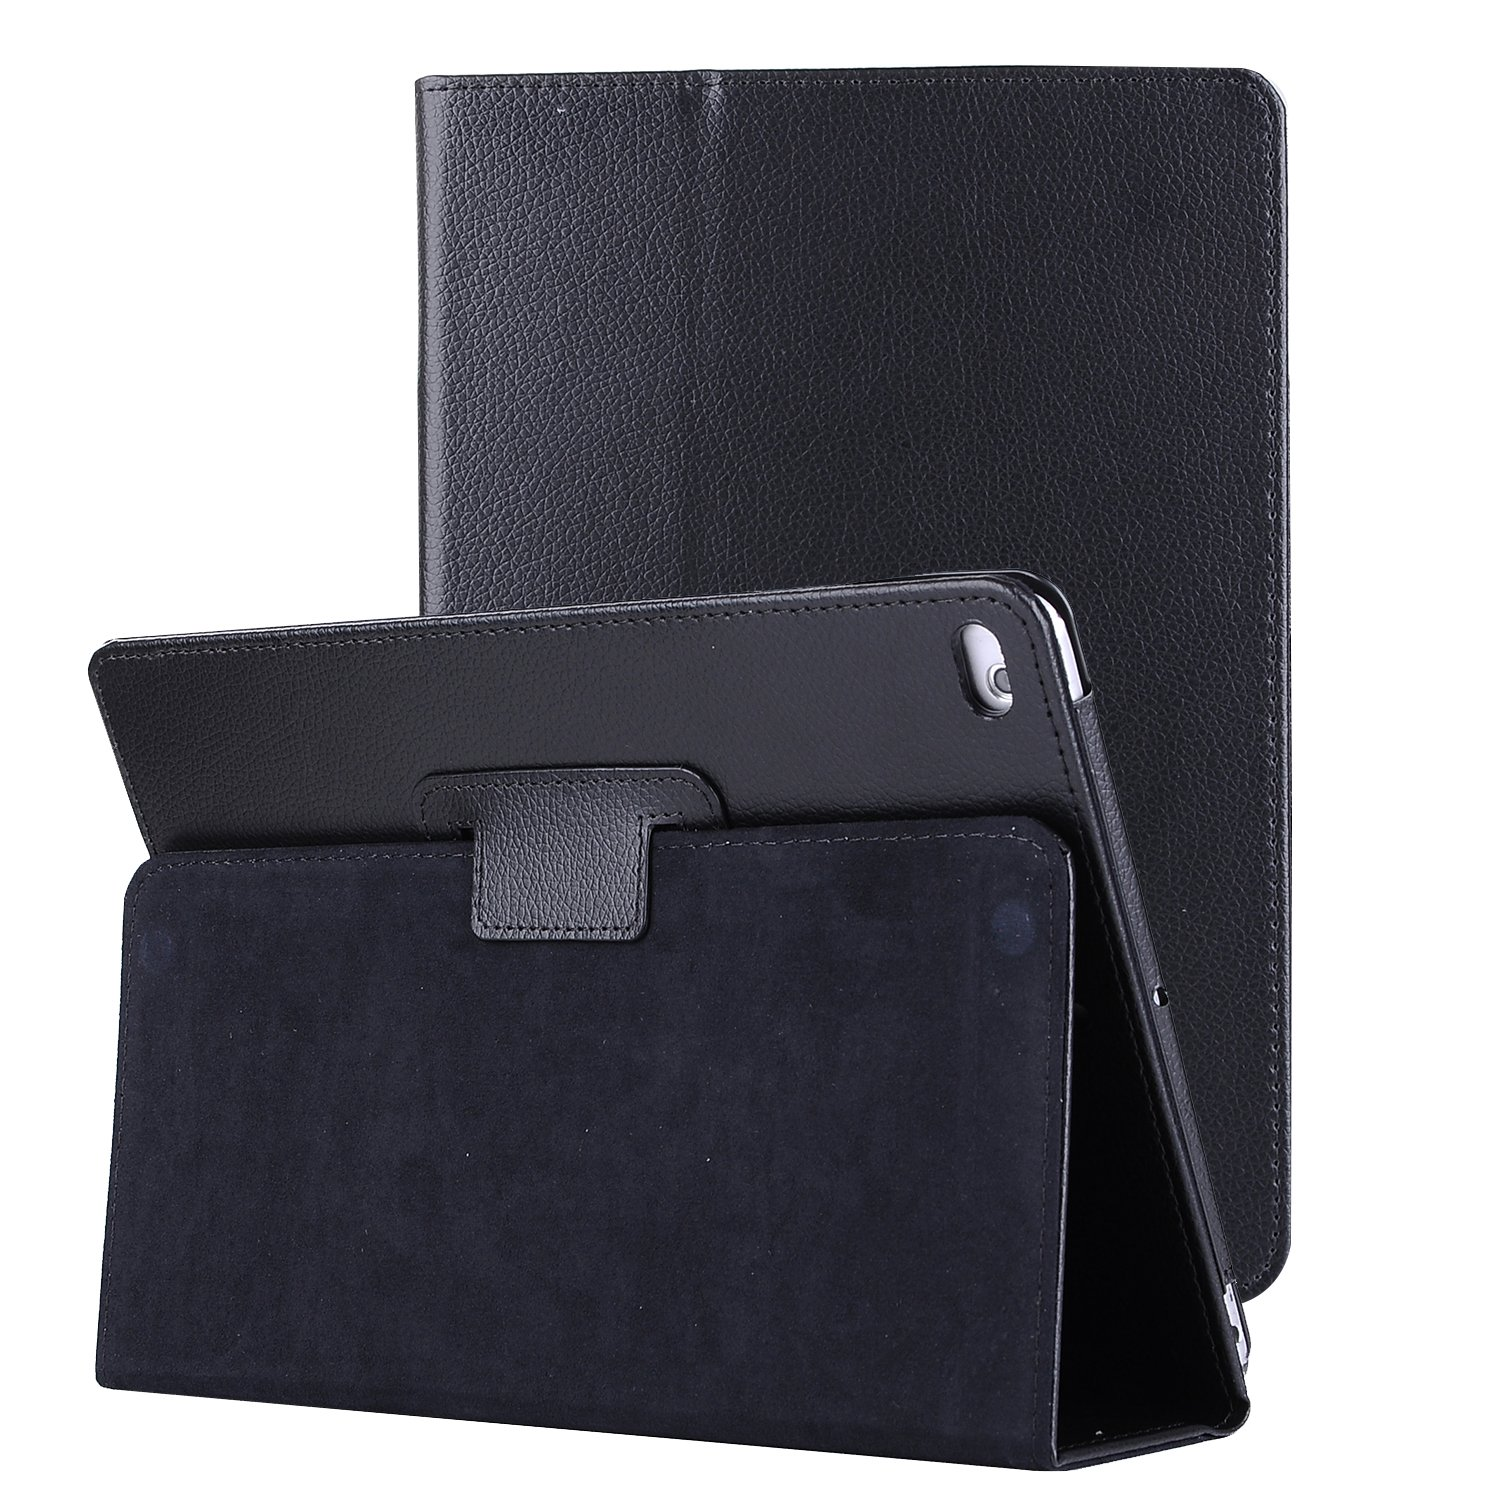 Case for iPad 9.7 2018 2017 5th 6th Generation Cover Auto Sleep Wake Up PU Leather A1893 A1954 A1822 Full Body Protective Cases